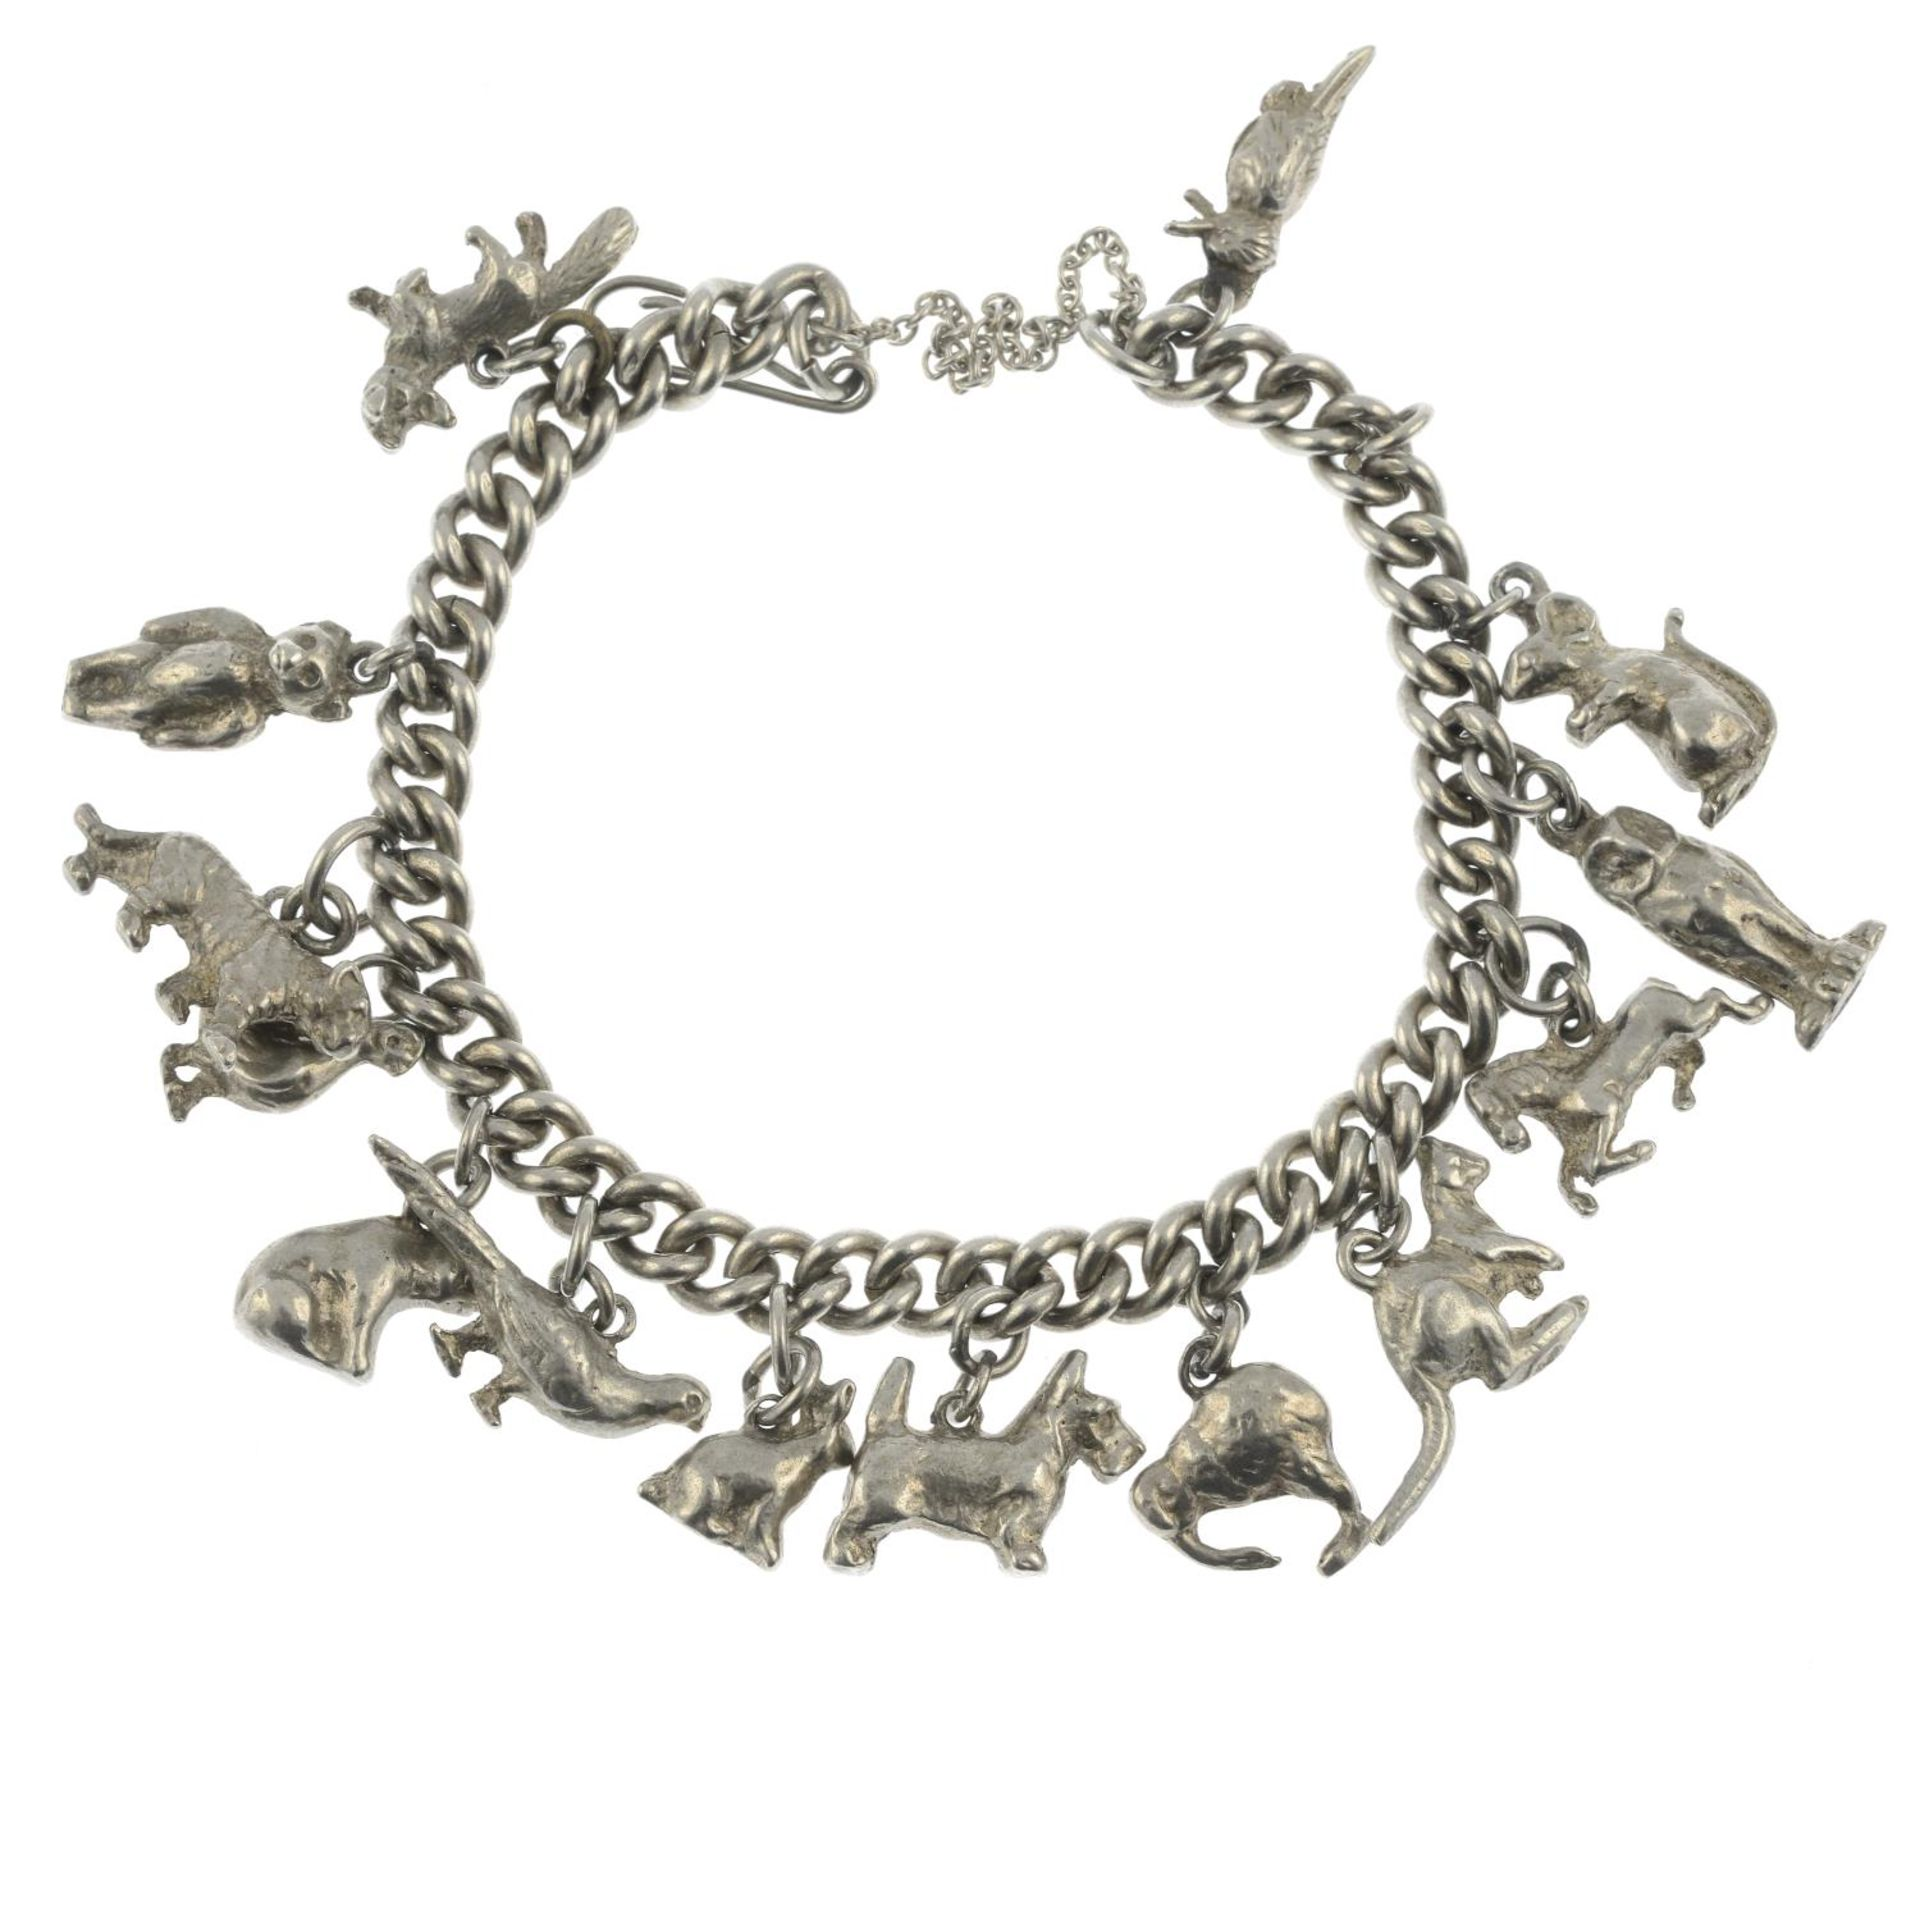 Two silver charm bracelets, a further charm bracelet and assorted charms. - Image 2 of 3